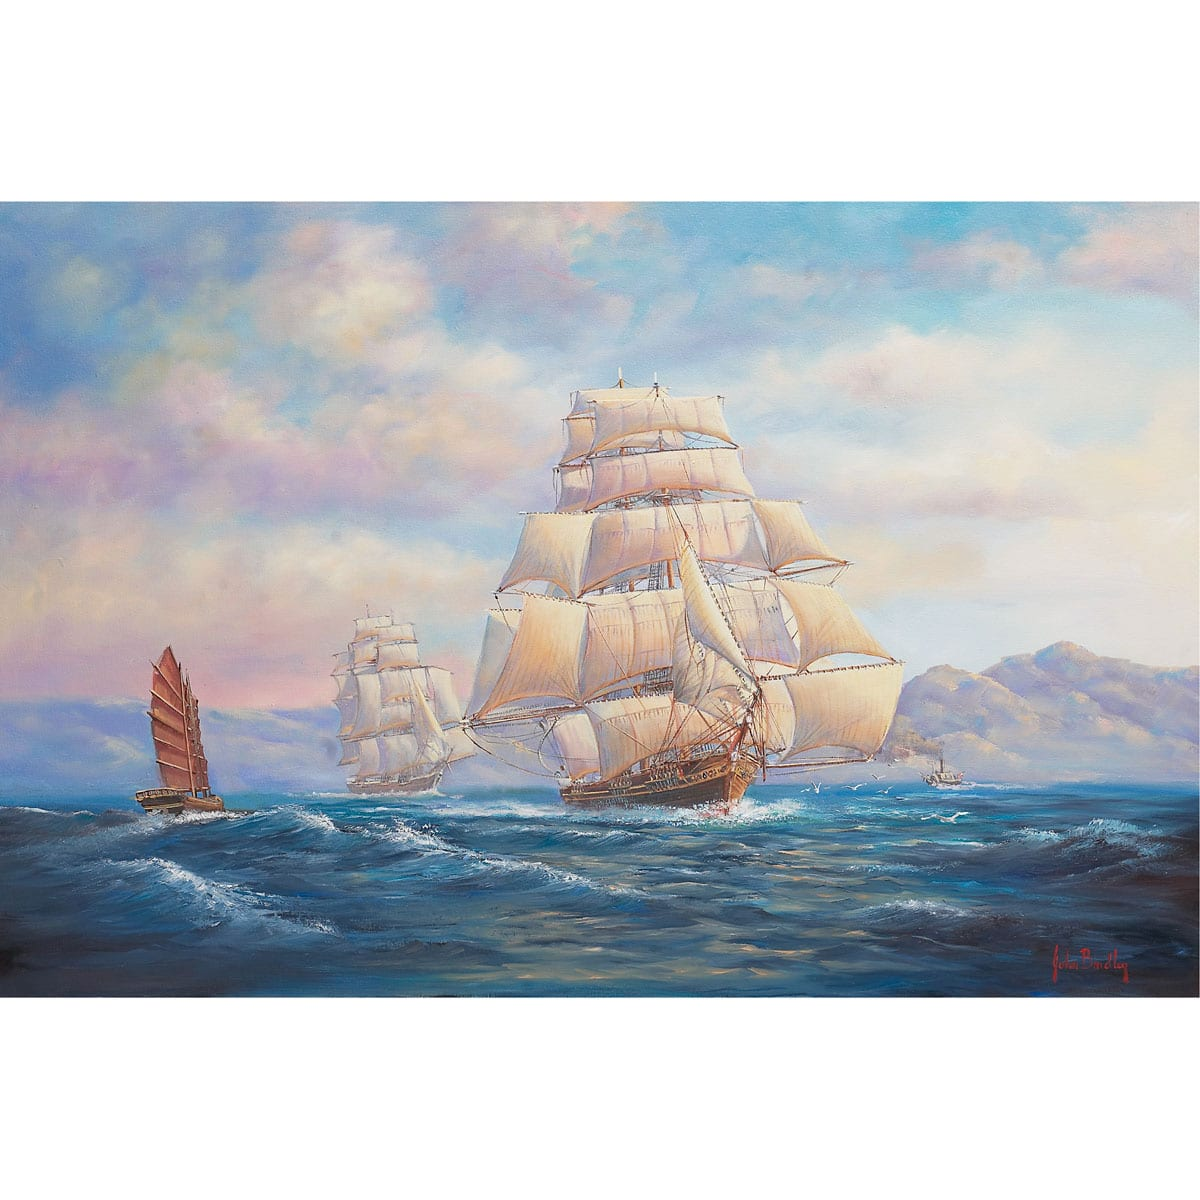 Homeward Bound Ship Painting by John Bradley